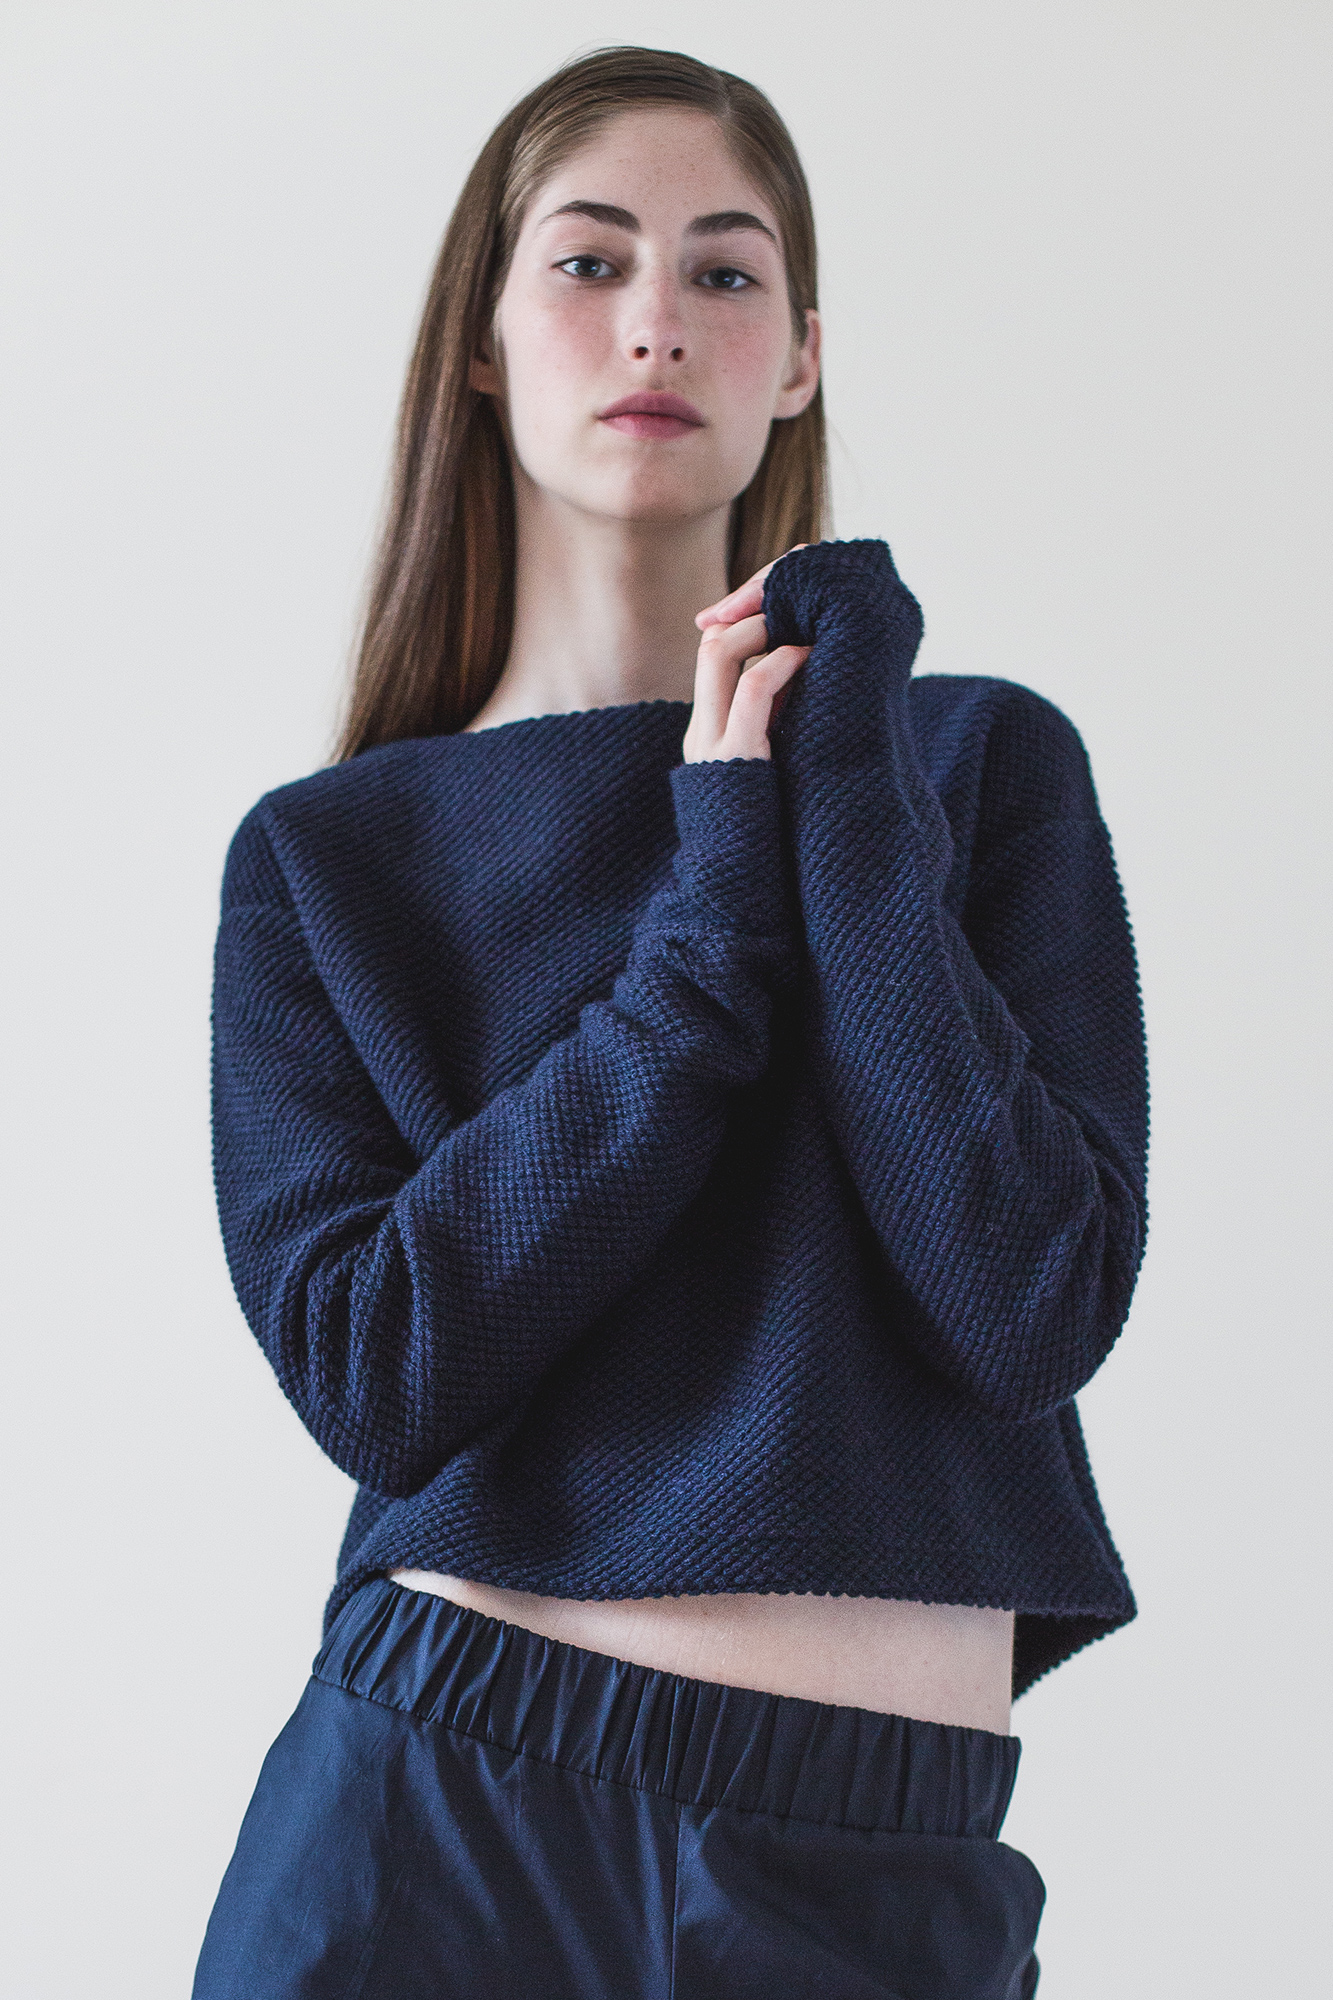 wearenotsisters_wrns_surveyor-sweater_01